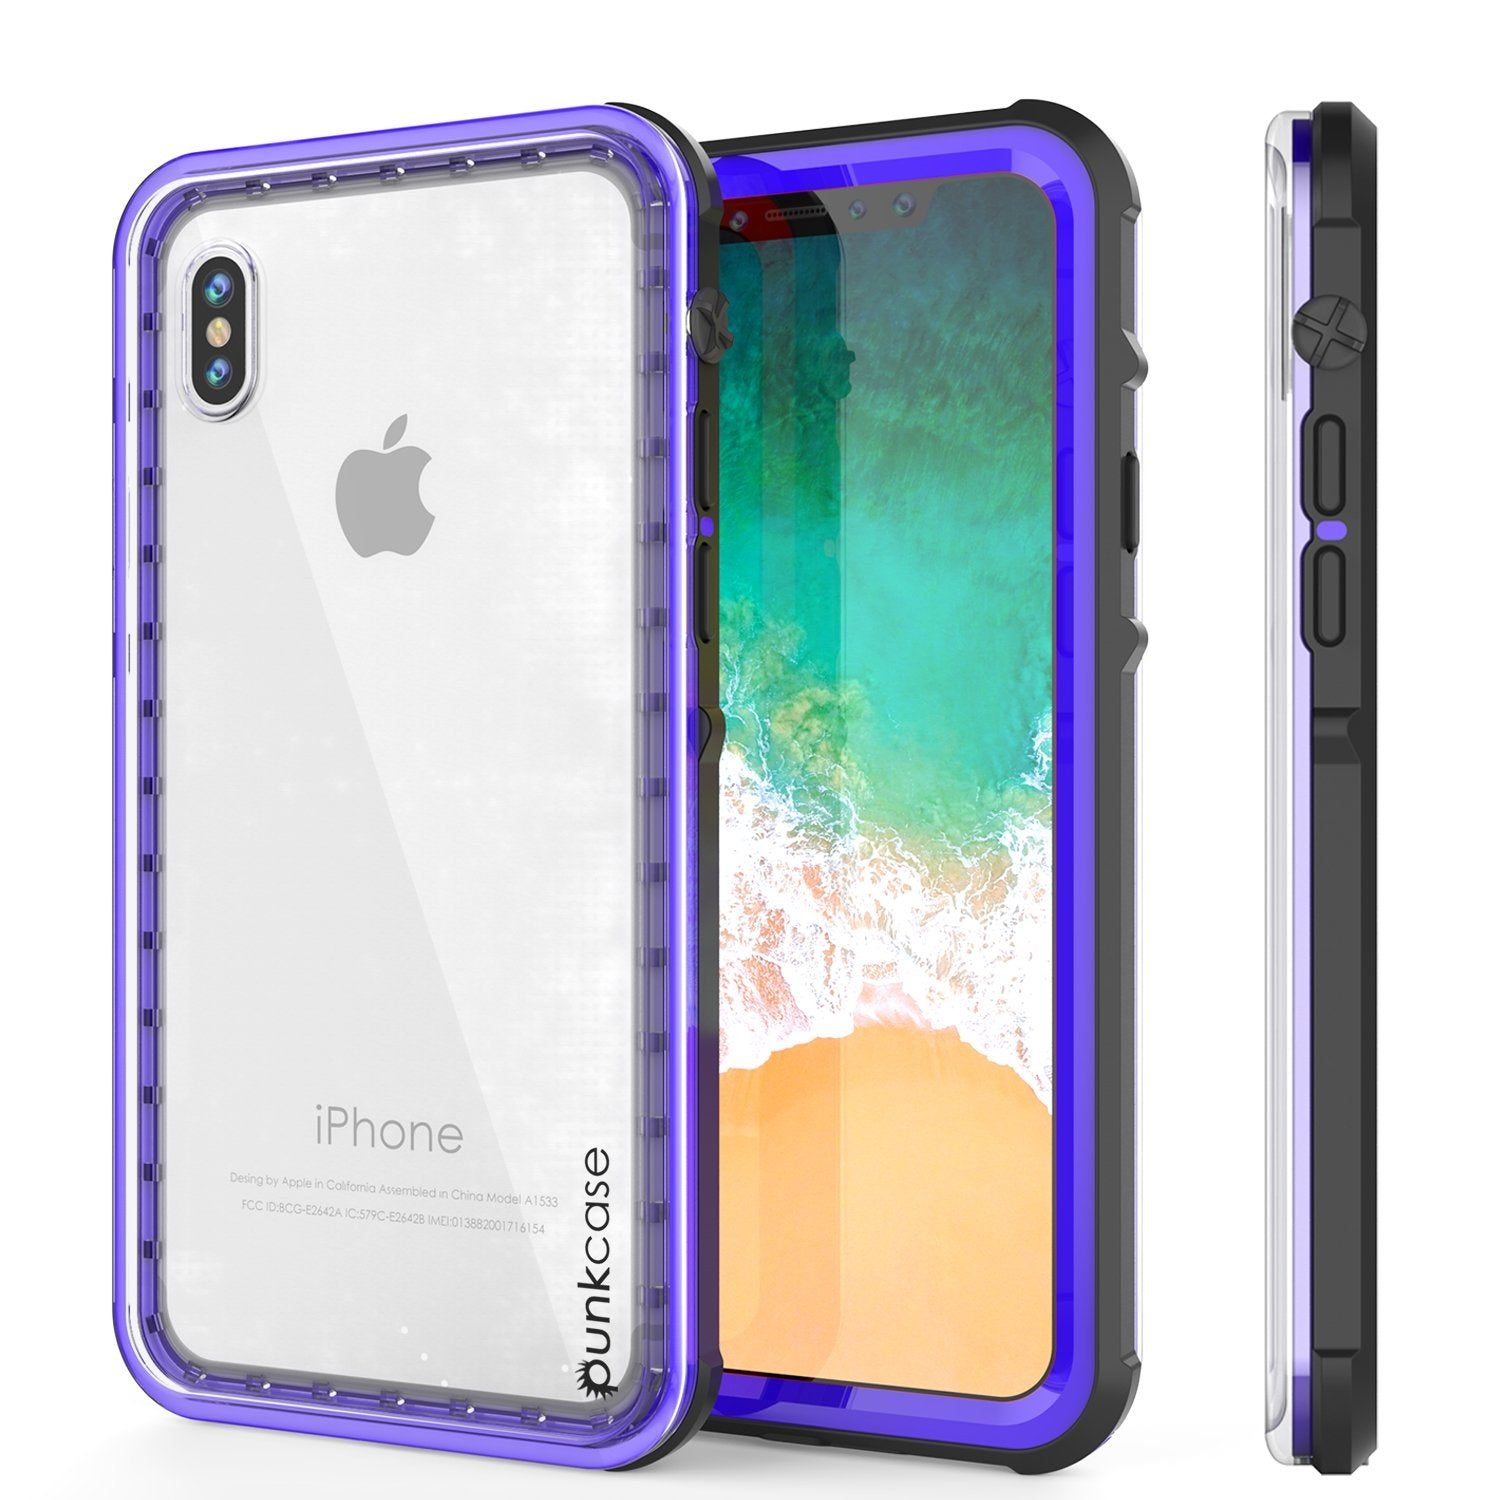 iPhone XS Max Case, PUNKCase [CRYSTAL SERIES] Protective IP68 Certified Cover [Purple]